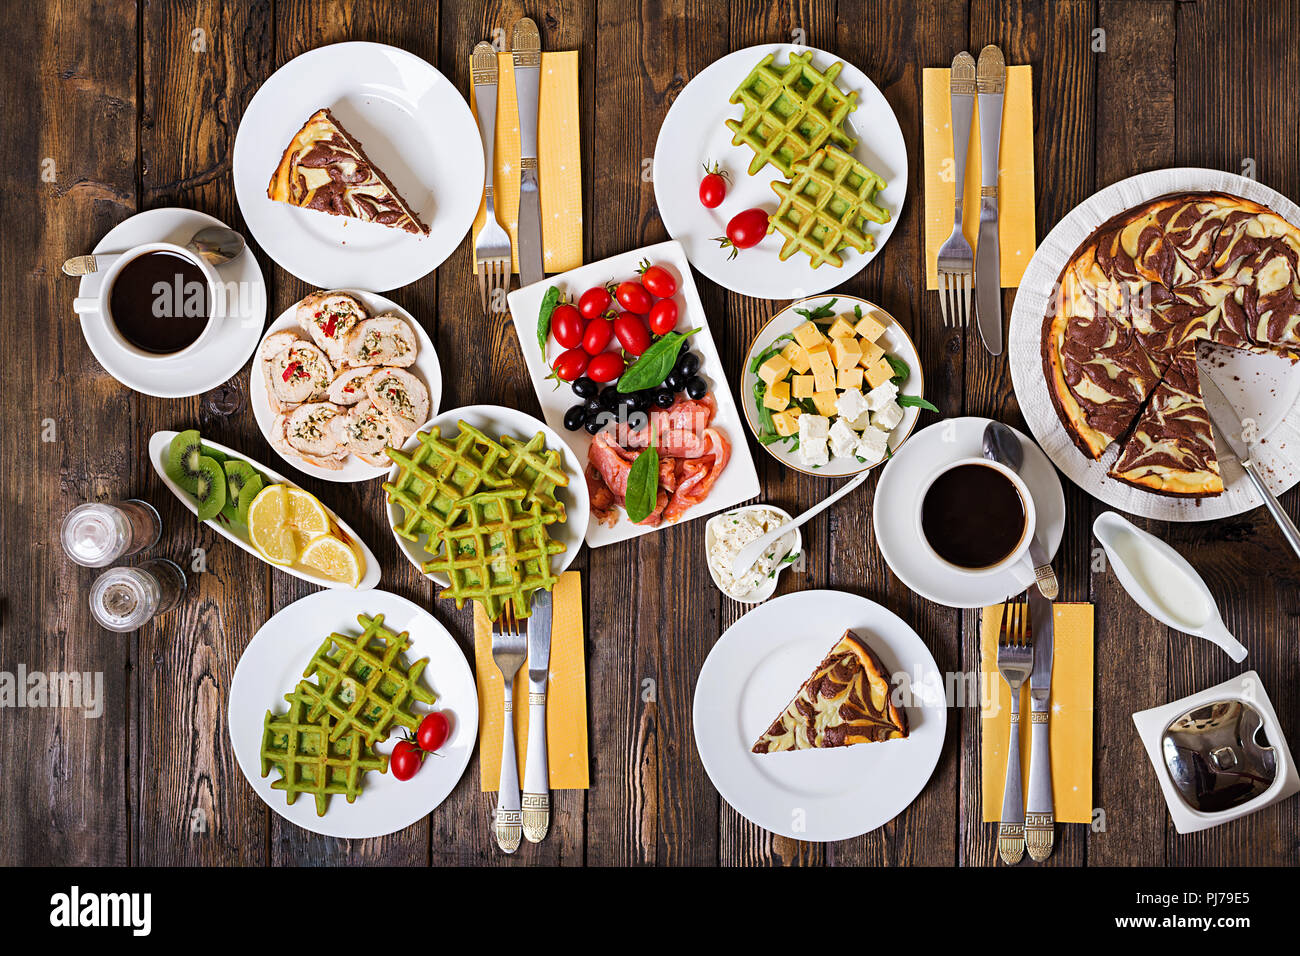 Breakfast food table. Festive brunch set, meal variety with spinach waffles, salmon, cheese, olives, chicken rolls and cheesecake. Top view. Flat lay - Stock Image